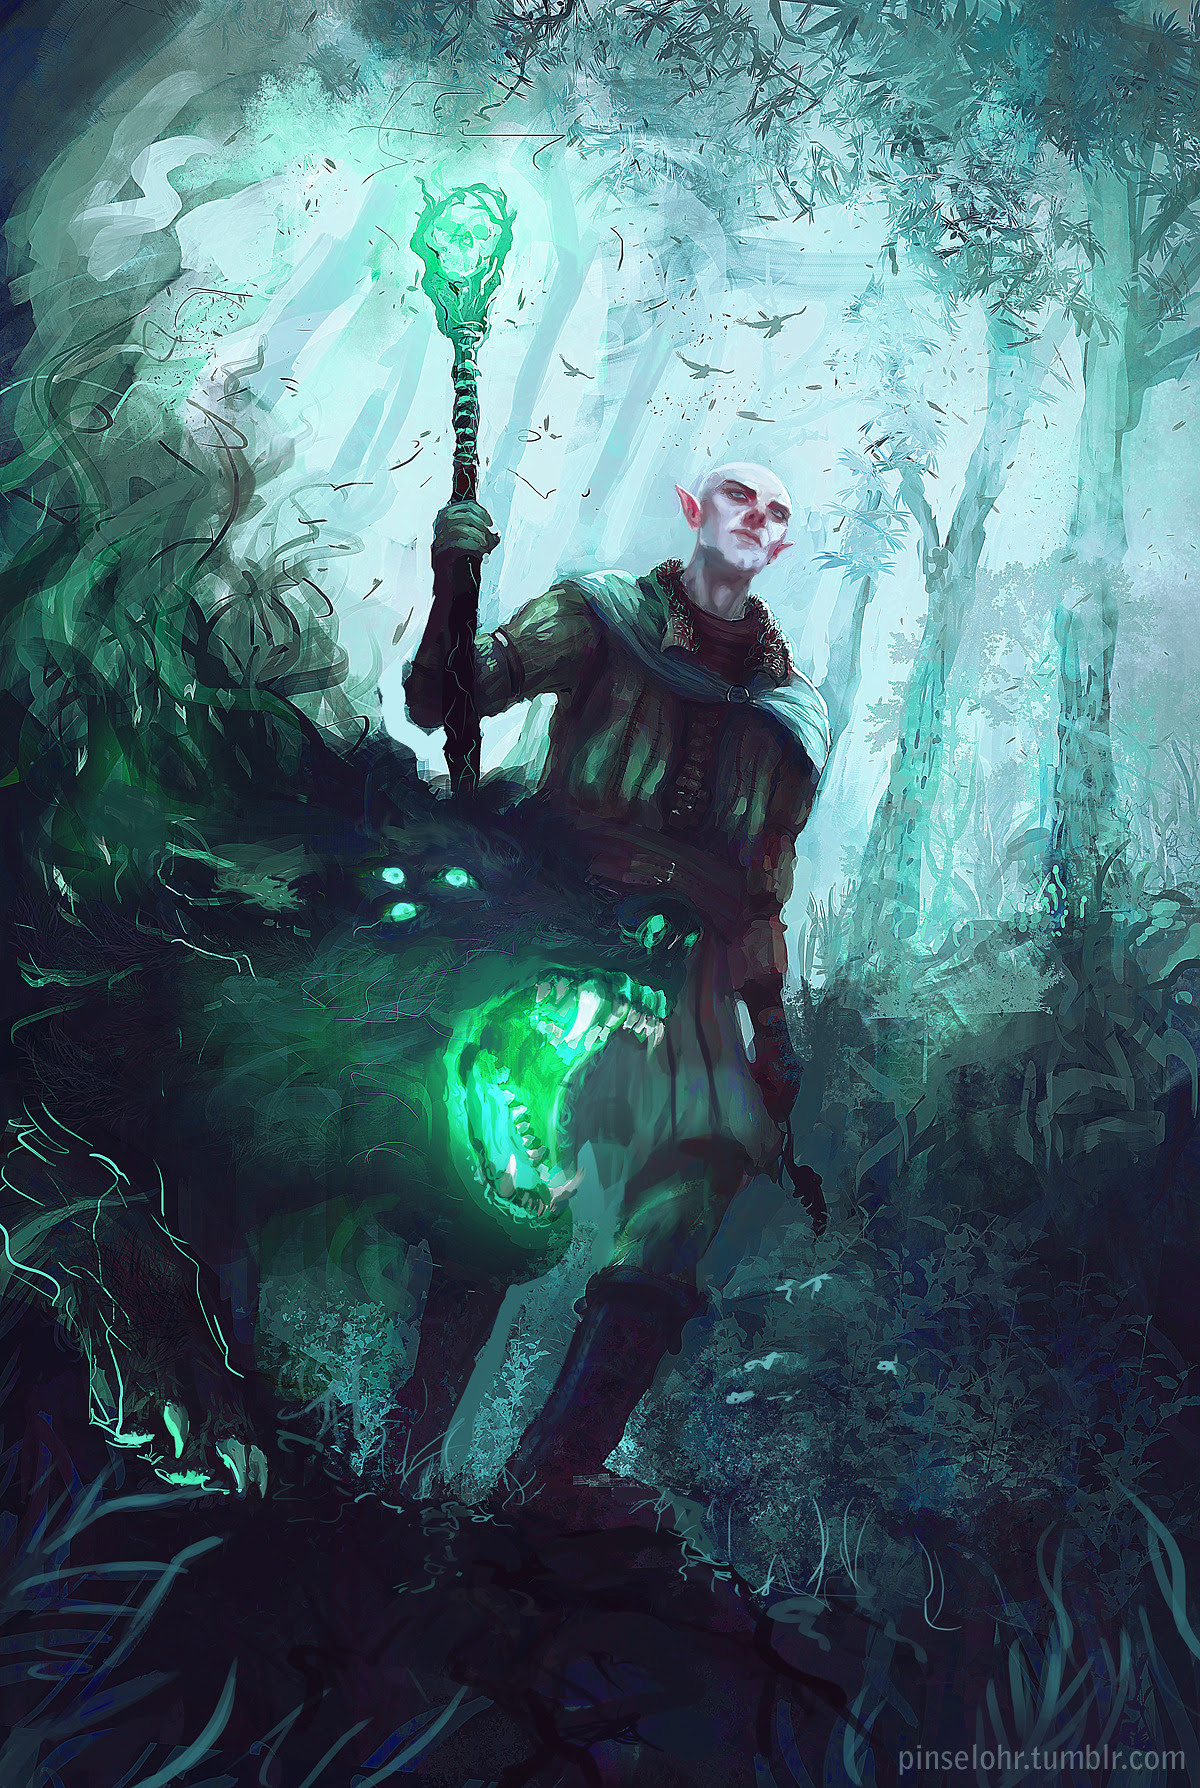 Dragon Age Inquisition: Solas Fan Art by Pinselohr